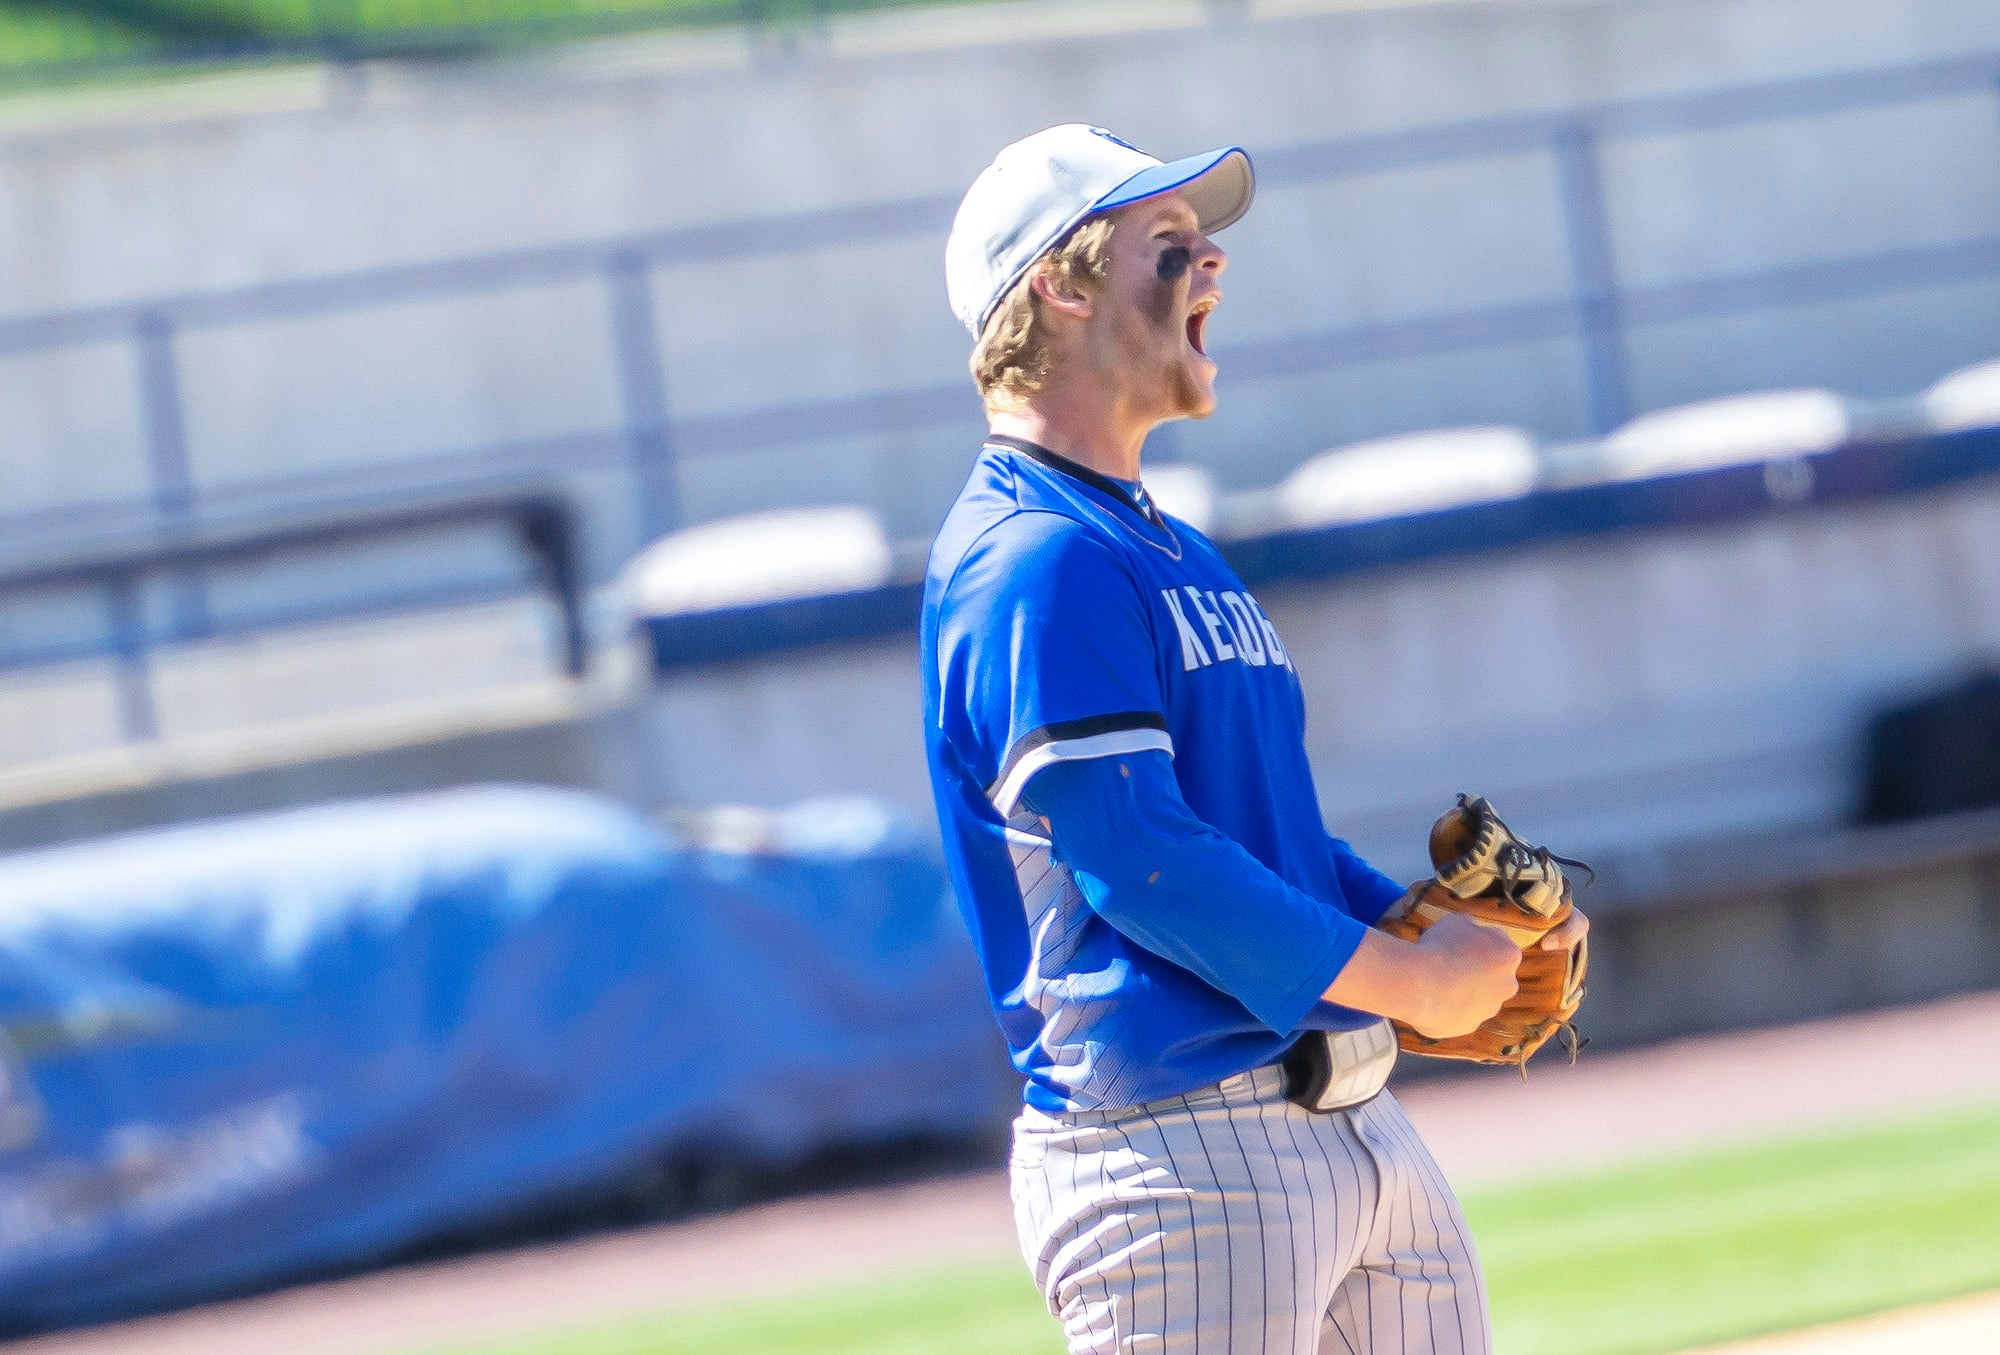 Pitcher Jayden Dentler shouts from the mound after striking out a batter.